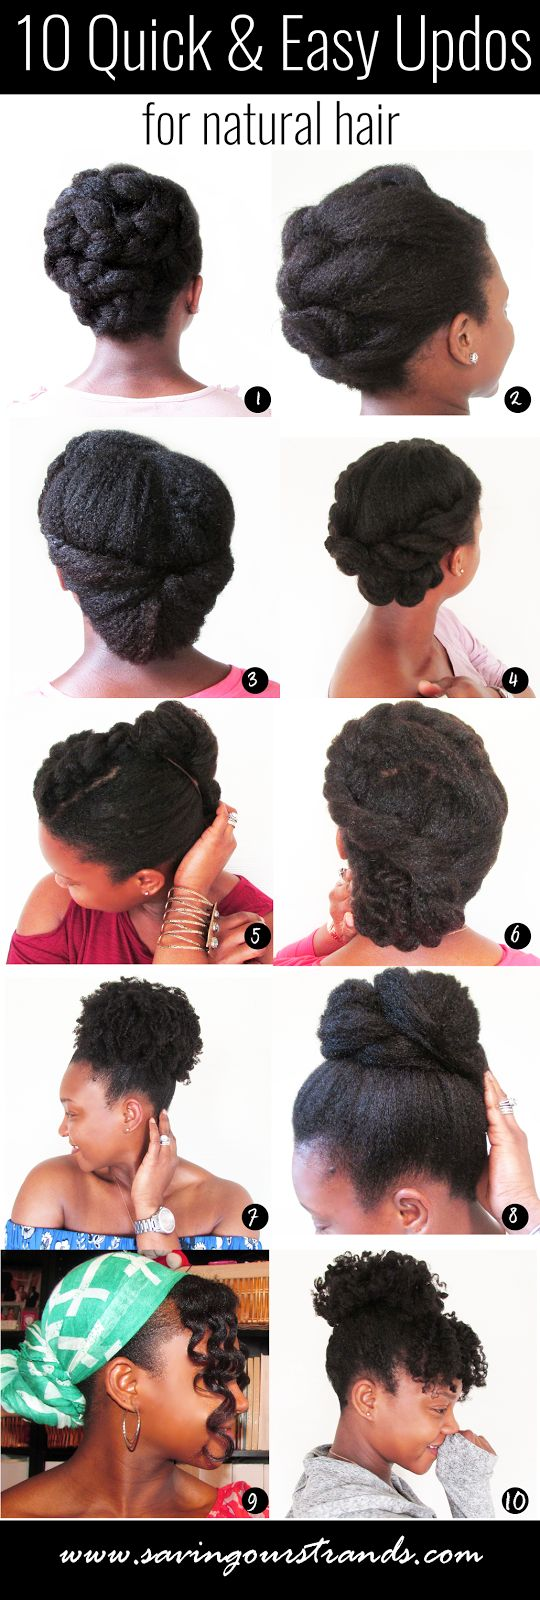 Astounding 1000 Ideas About Easy Natural Hairstyles On Pinterest Natural Short Hairstyles For Black Women Fulllsitofus